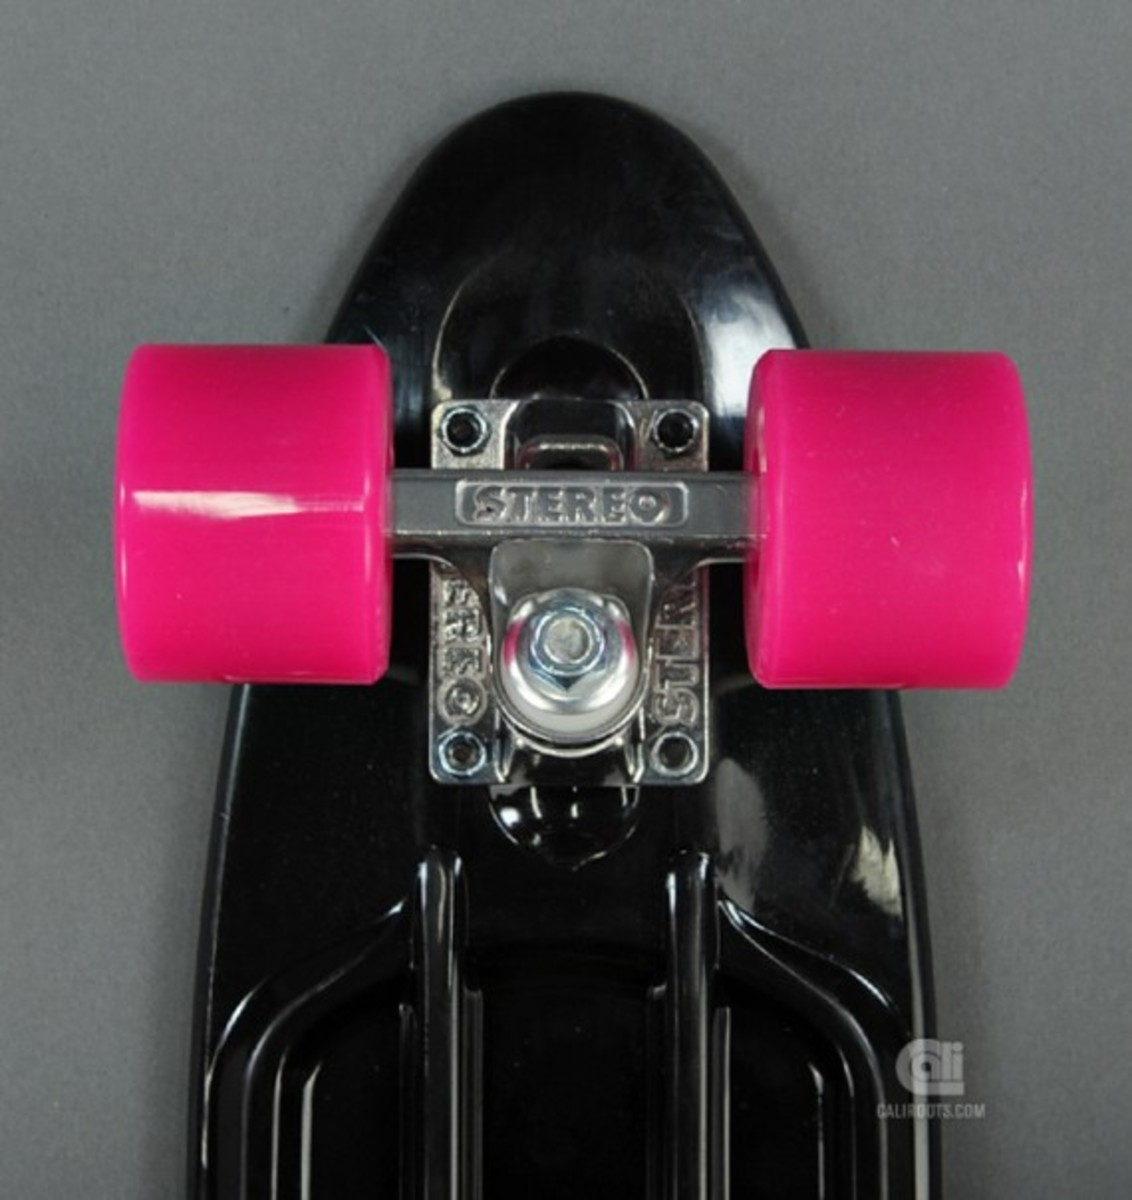 stereo-keep-a-breast-vinyl-cruiser-11